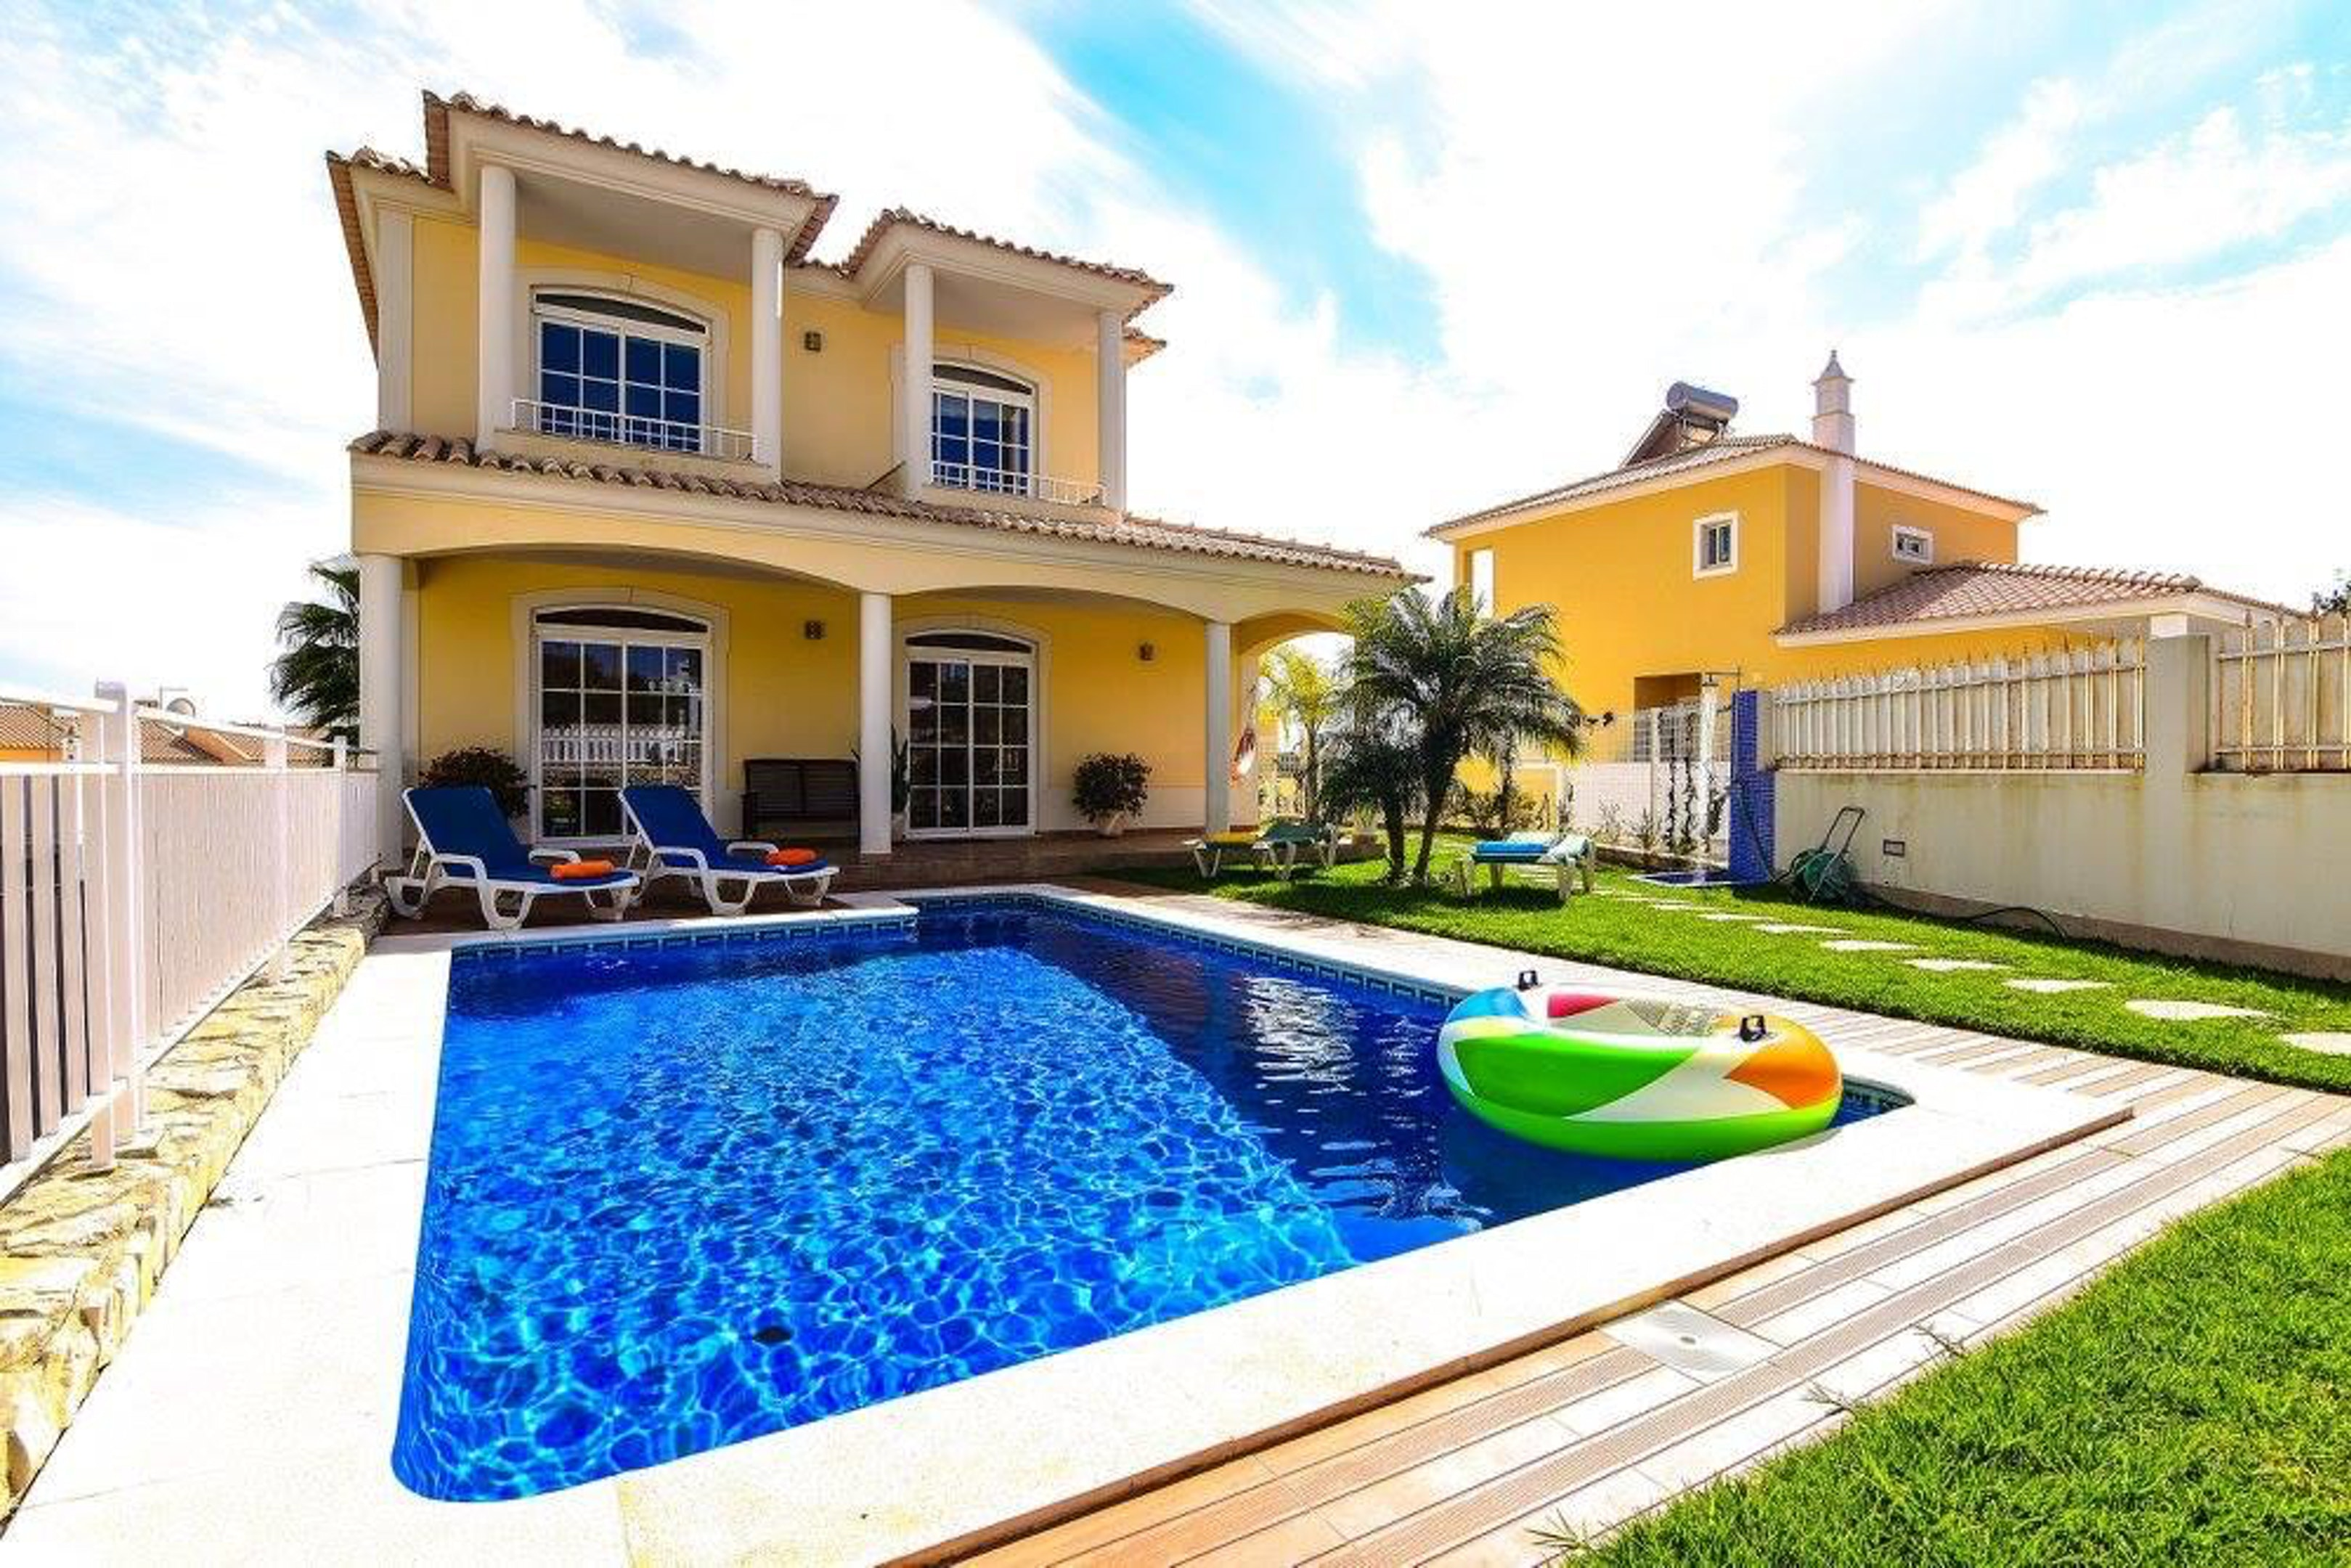 Villa with 3 bedrooms in Armação de Pêra, with wonderful sea view, private pool, furnished garden